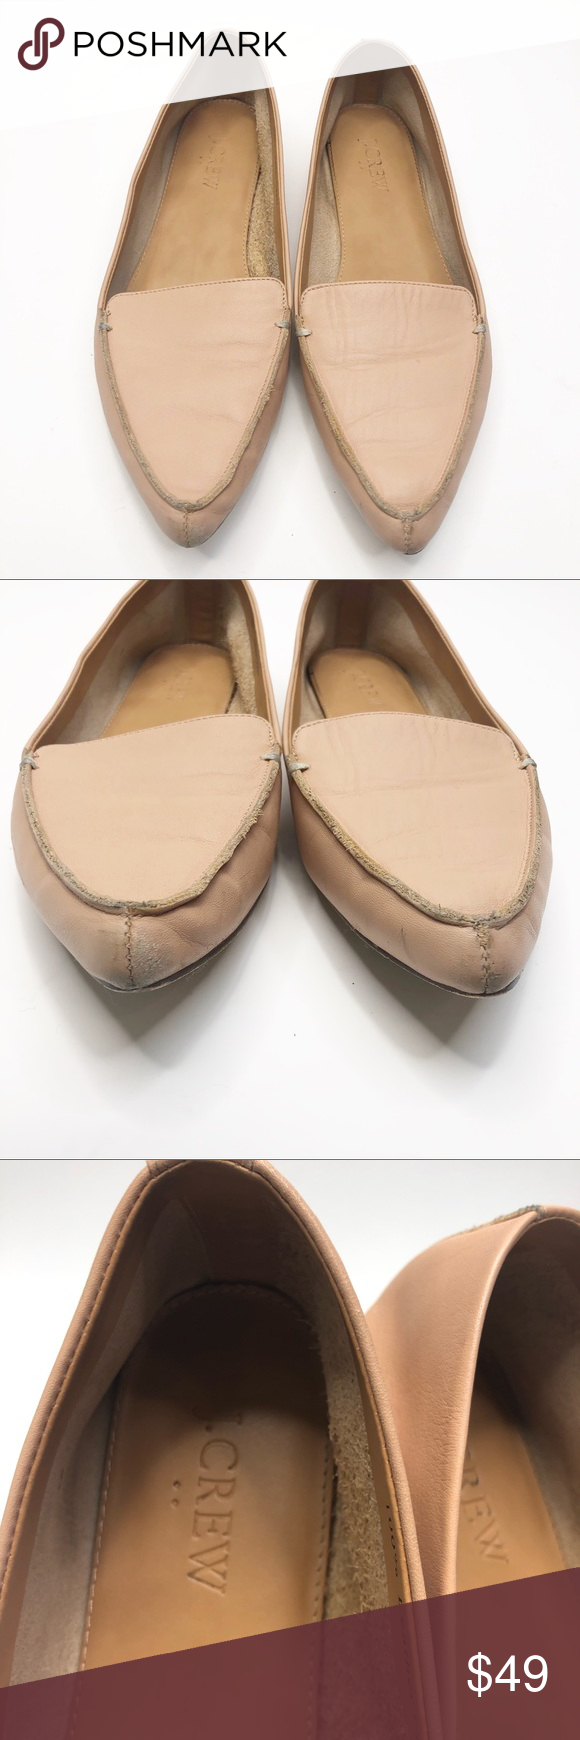 016789fbbaa J. Crew  Edie  Leather Loafers J. Crew Factory  Edie  Warm Beige Tan Leather  Loafers Pointed Nose Flats. Size 8.5. See photos for wear - a few nicks at  ...